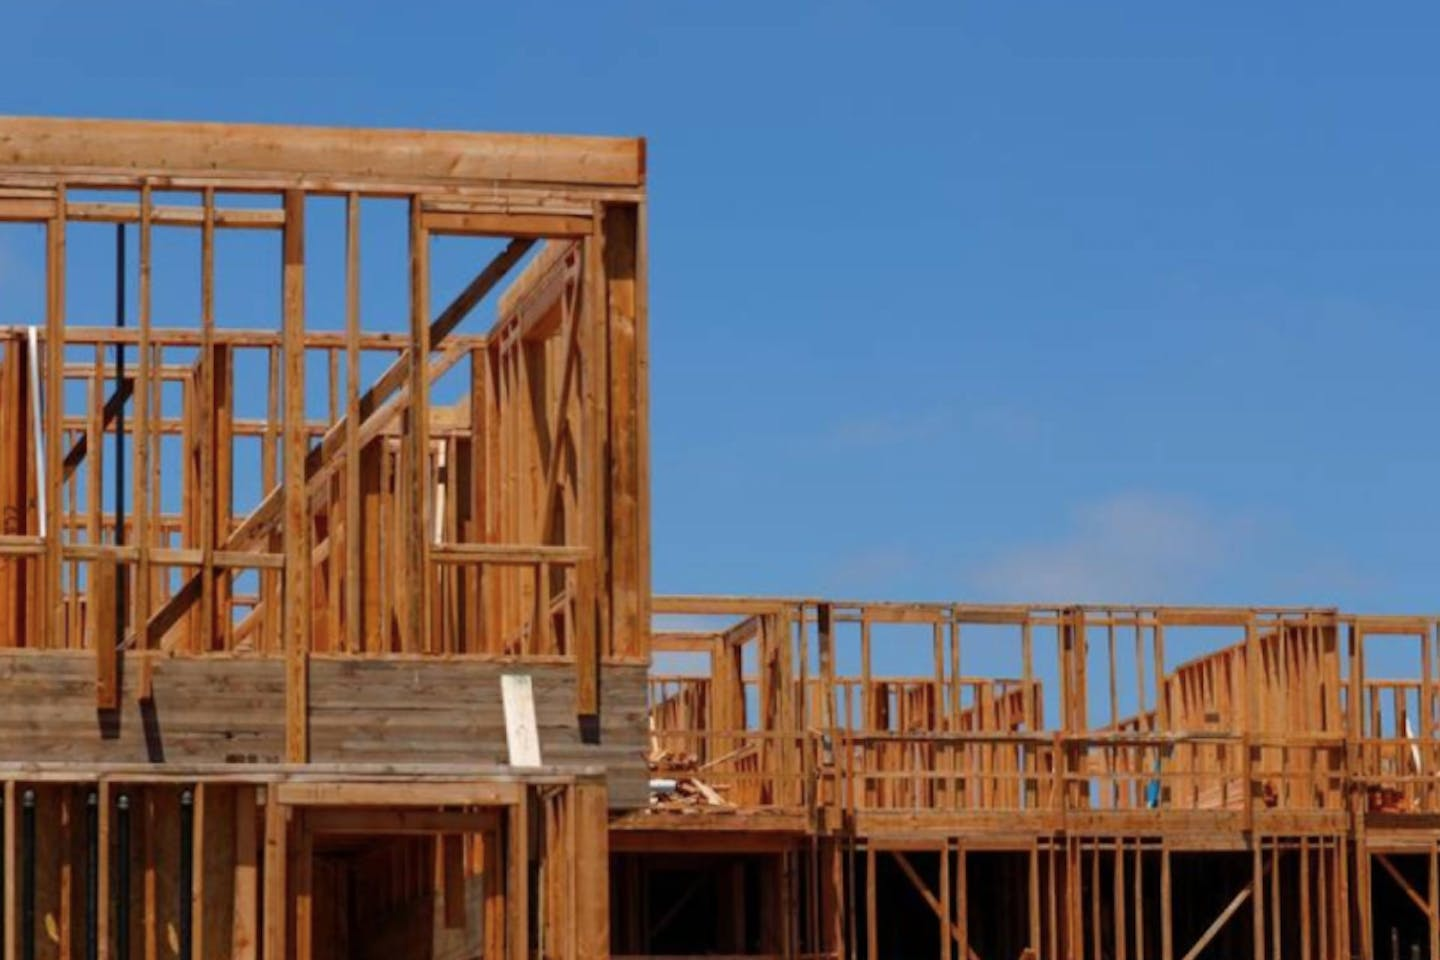 Development and construction continues on a large scale housing project of over 600 homes in Oceanside, California, U.S.